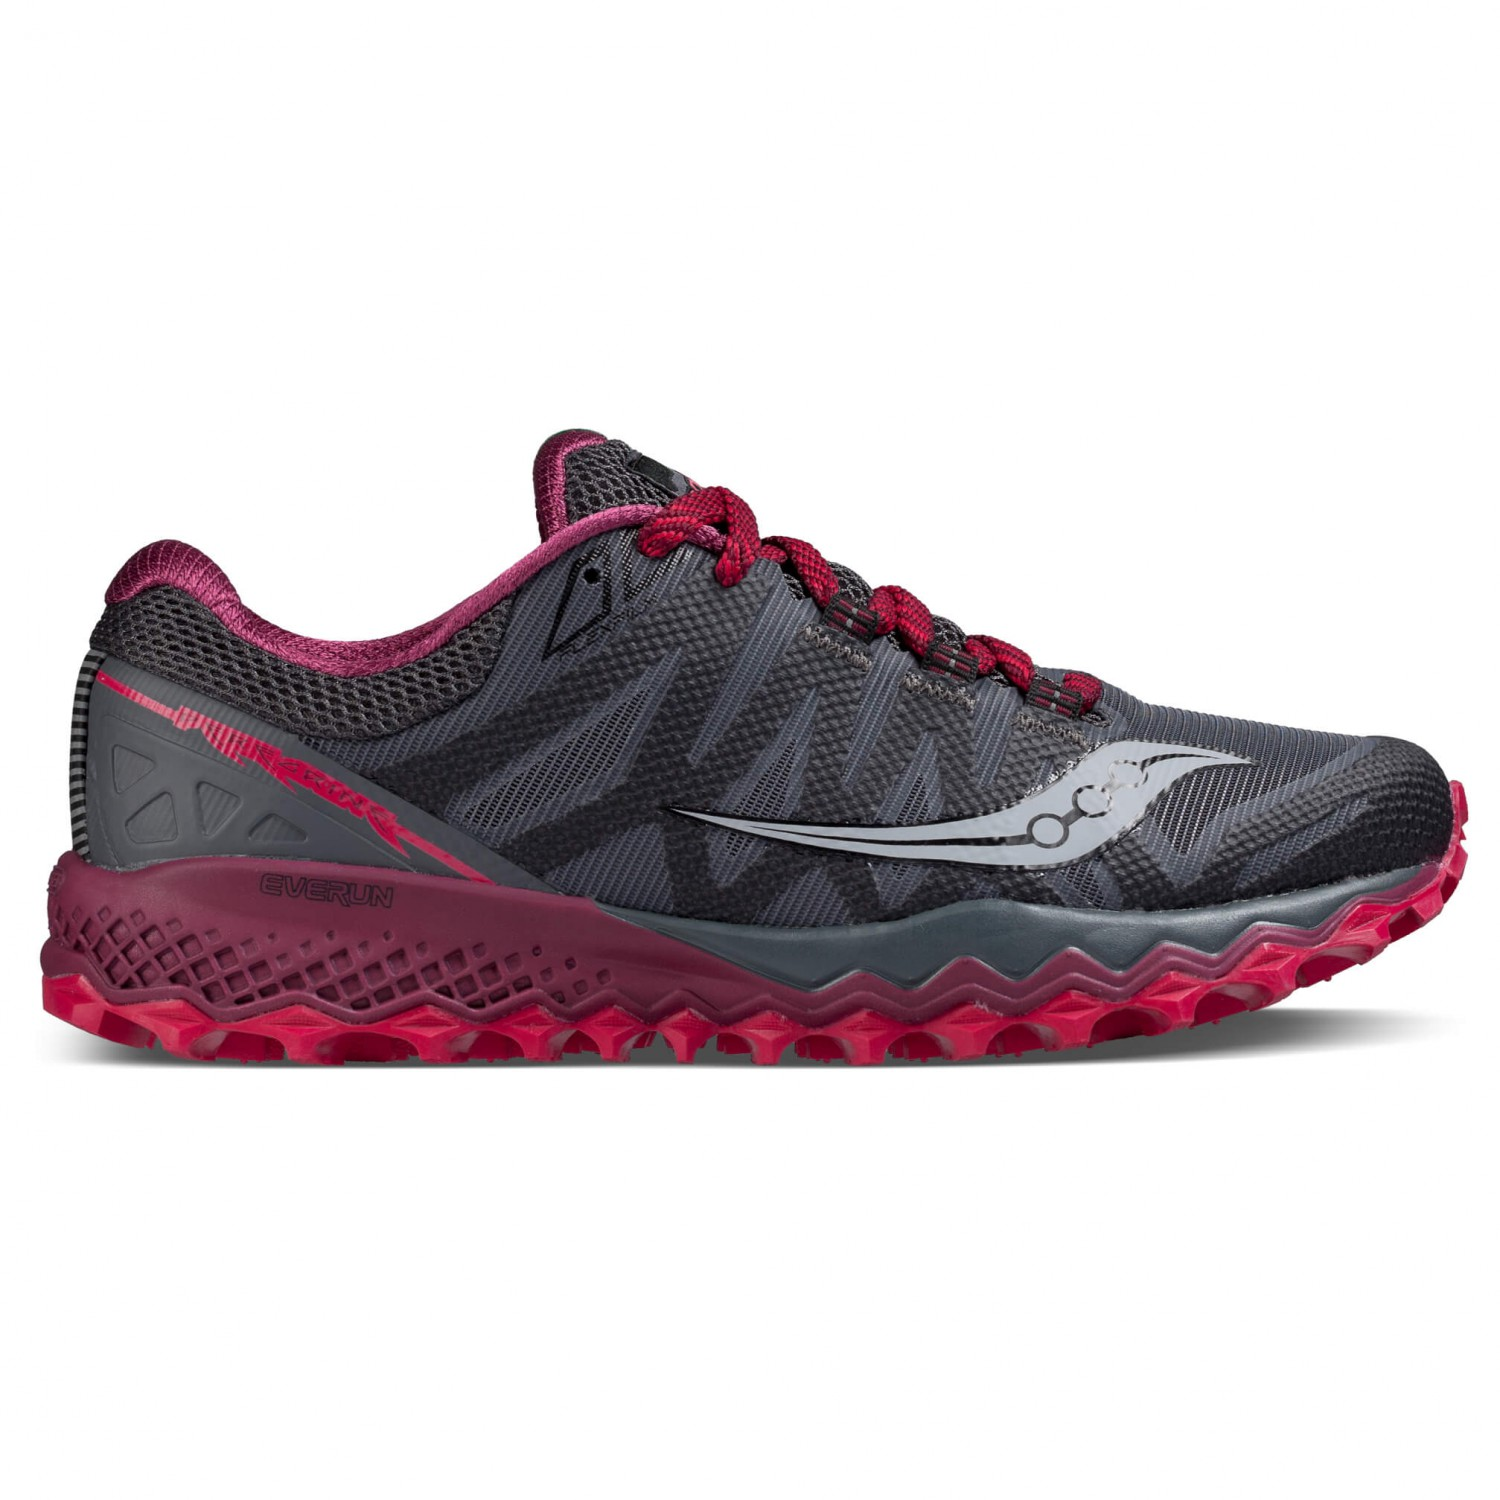 b5245a5a3d7d ... quality products bfeef a4ef2 ... Saucony - Womens Peregrine 7 - Trail  running shoes ...